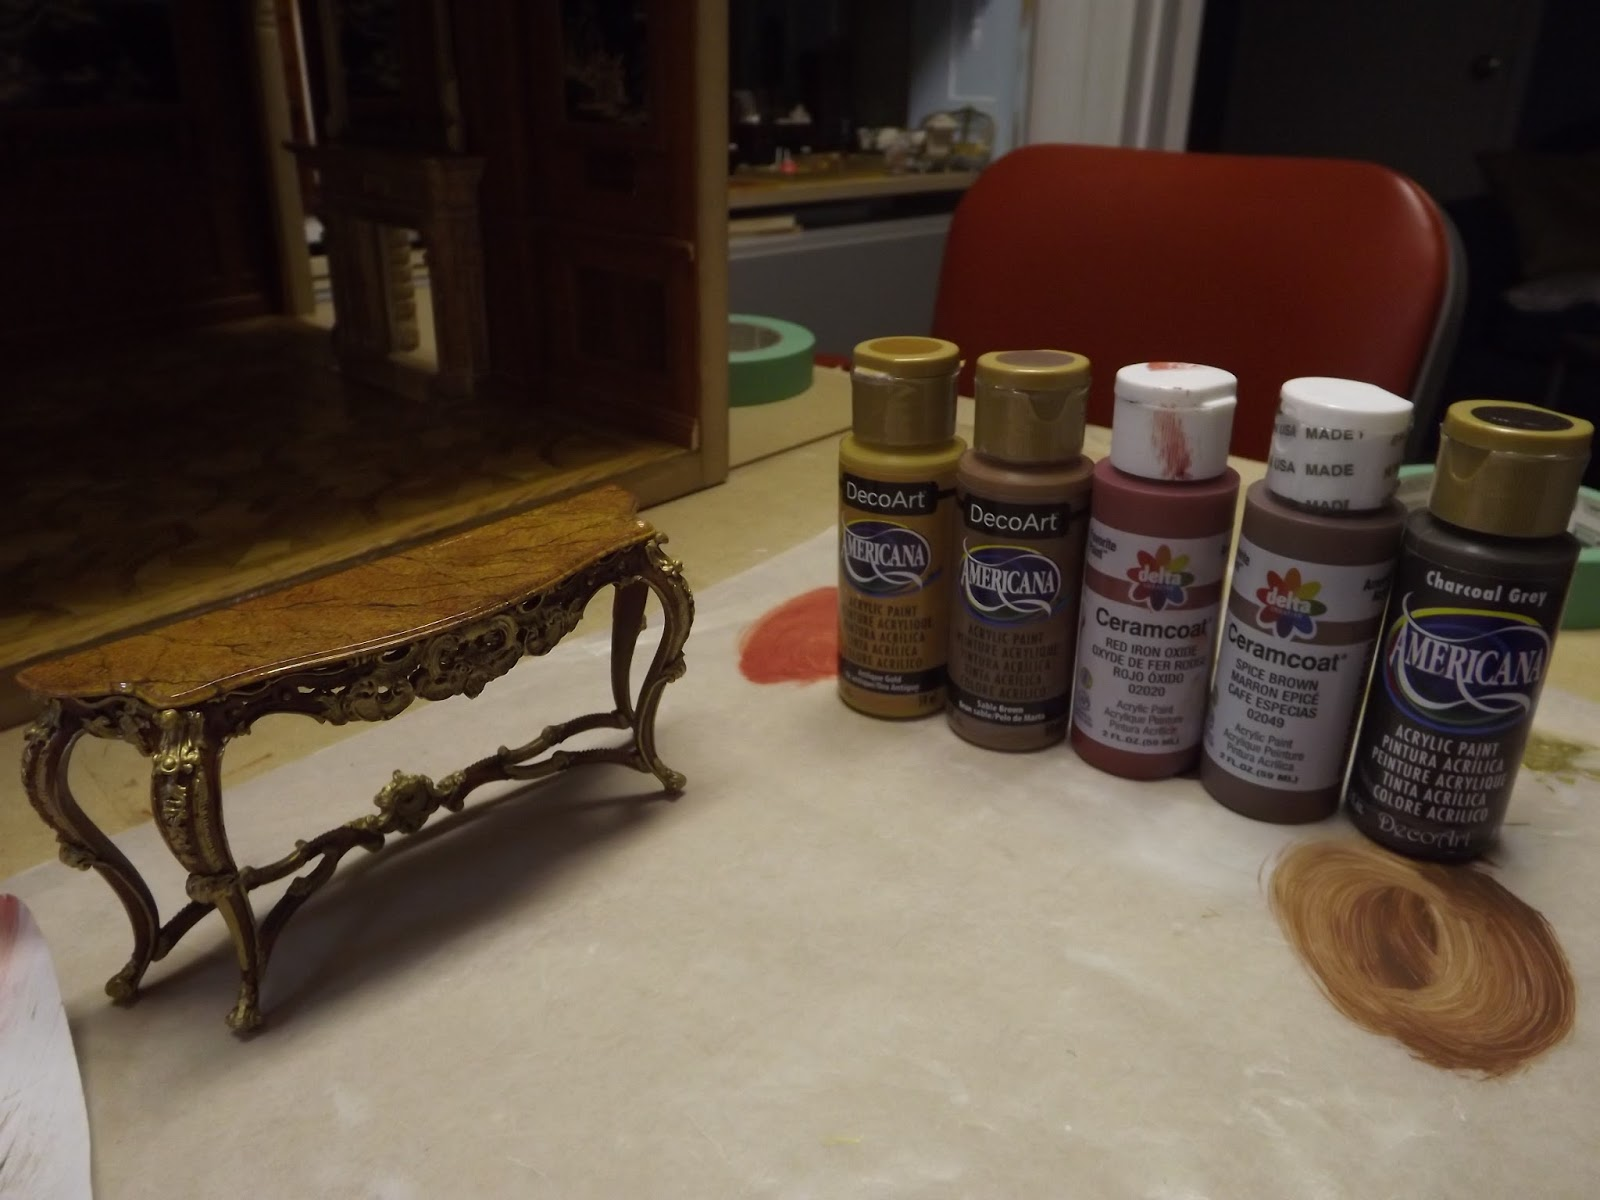 Late Victorian English Manor Dollhouse 1 12 Miniature From Scratch June 2017